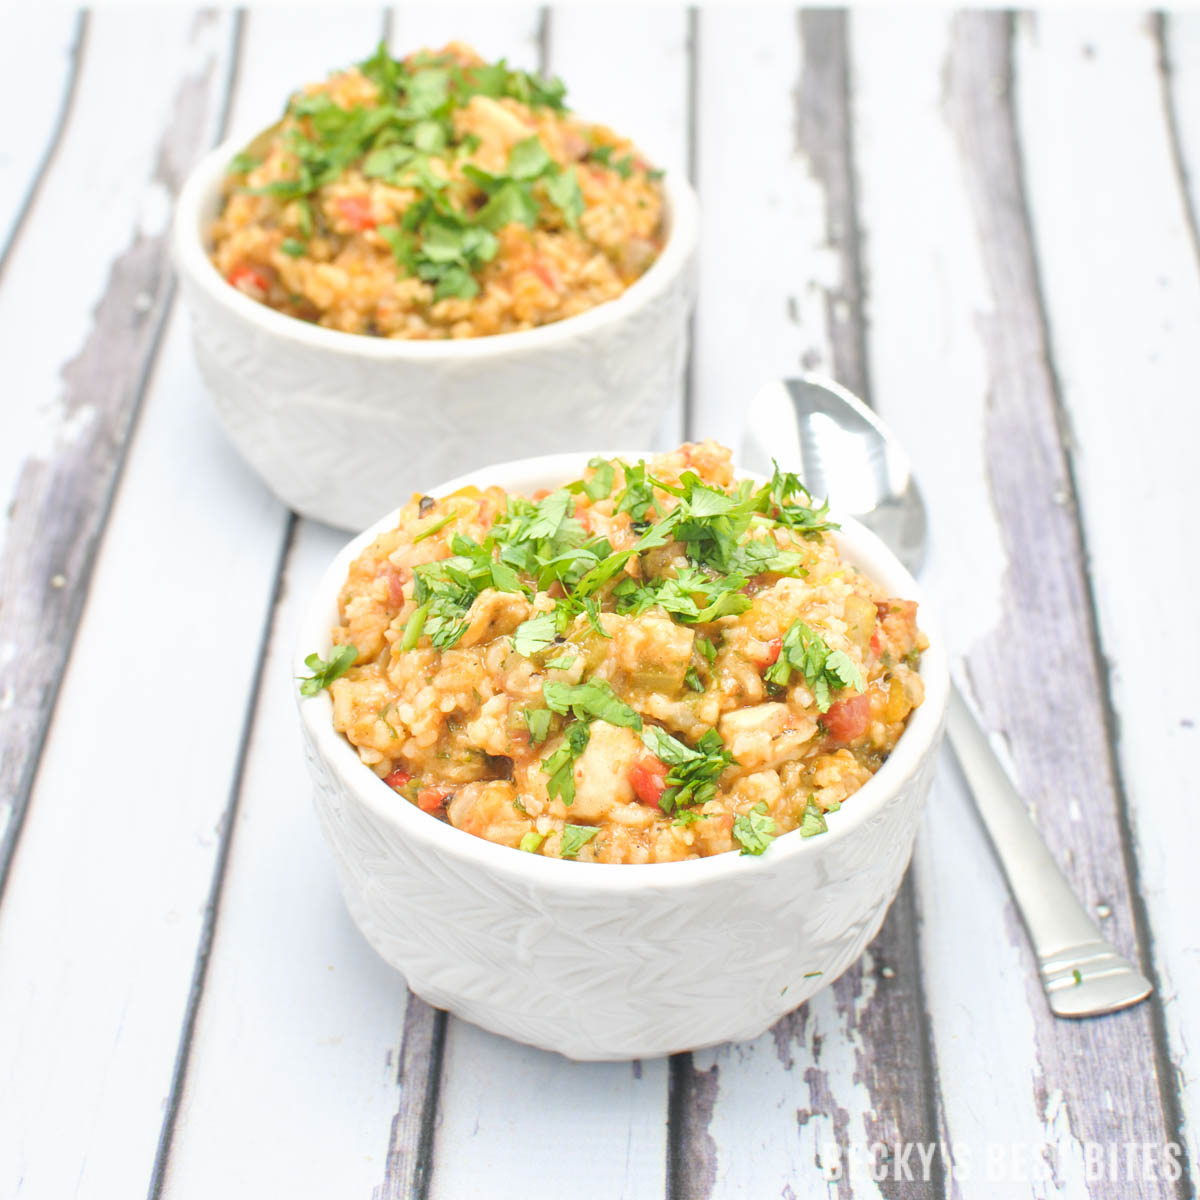 Hubby's Spicy Jambalaya Recipe is a Mardi Gras inspired meal to add to any game day spread. Protein packed dinner with smoked sausage, chicken and shrimp! | beckysbestbites.com